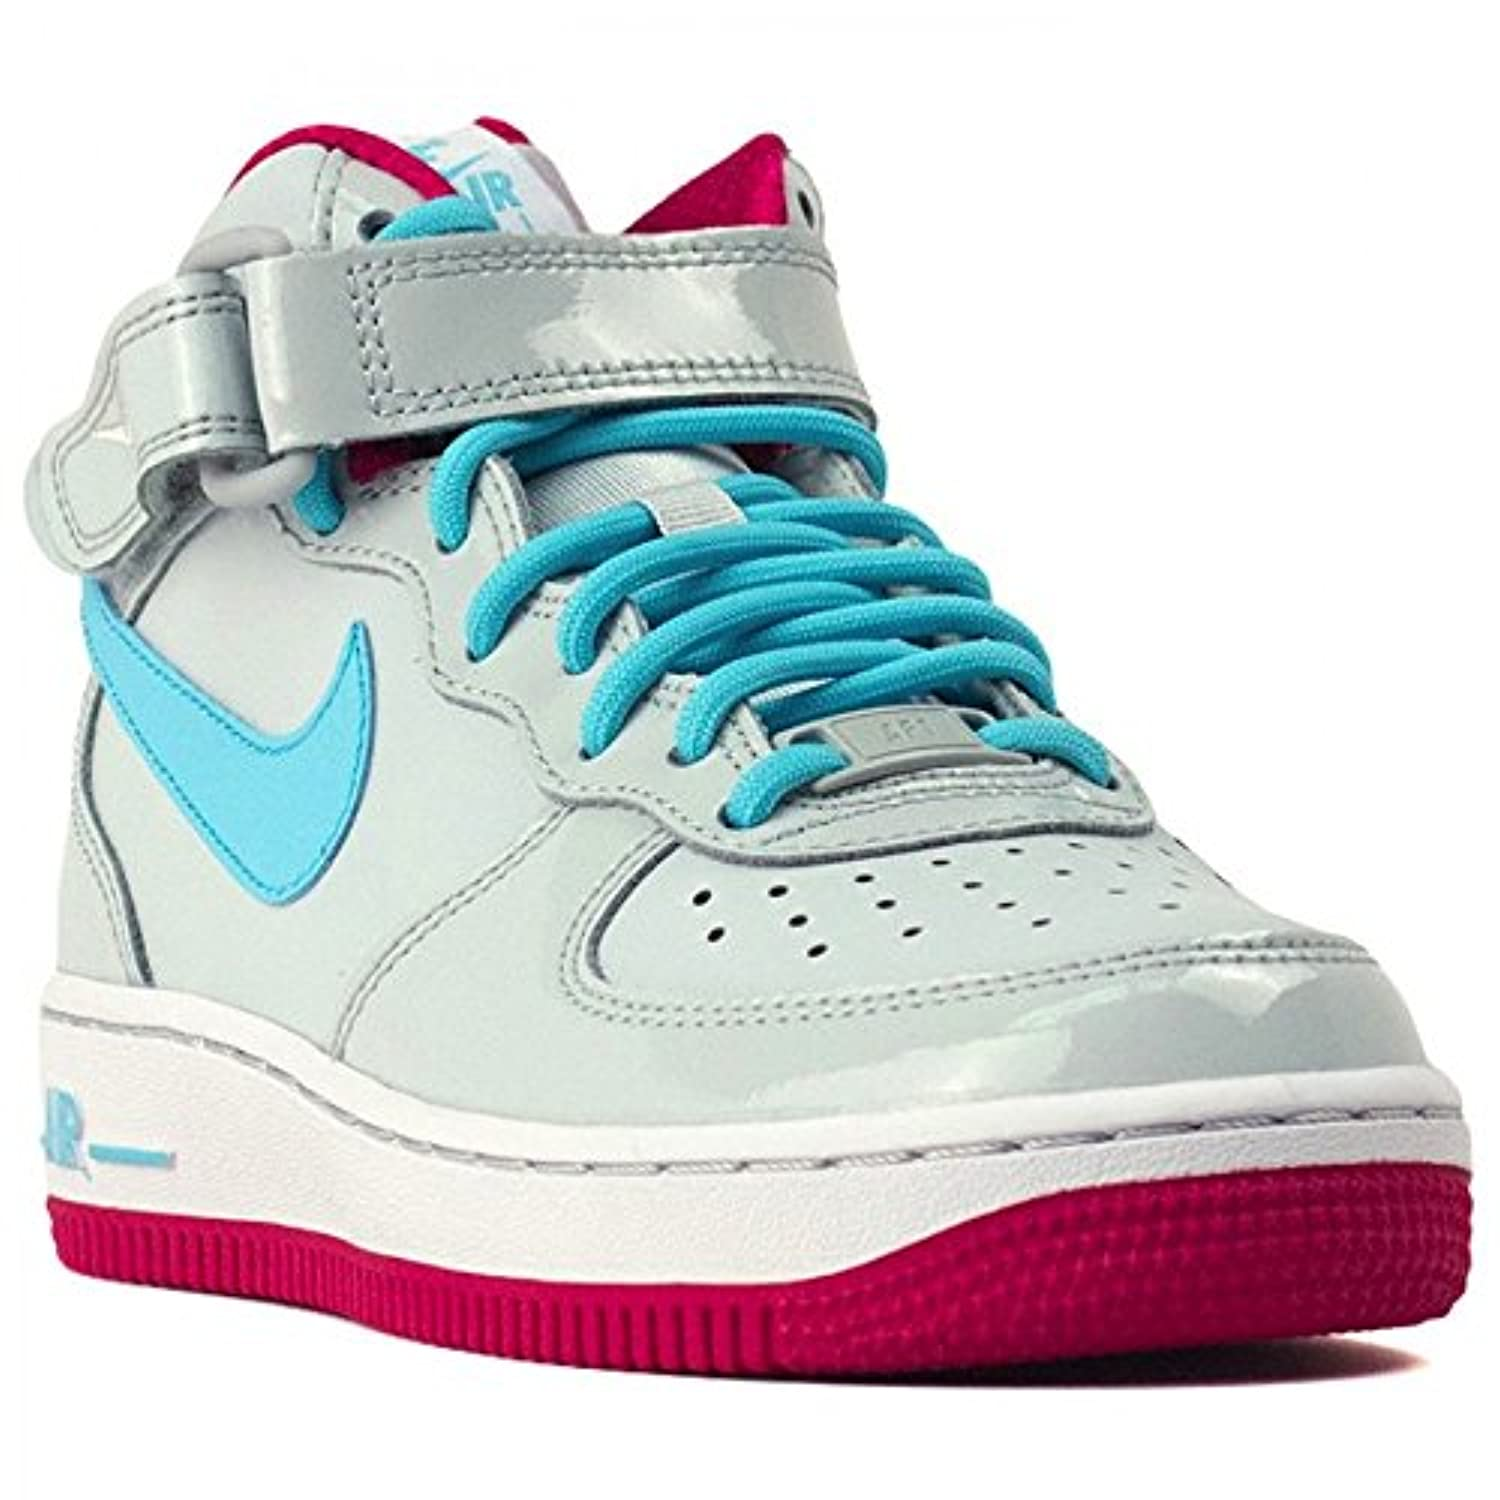 nike air force 1 mid gs youth grey blue pink size 6 big. Black Bedroom Furniture Sets. Home Design Ideas